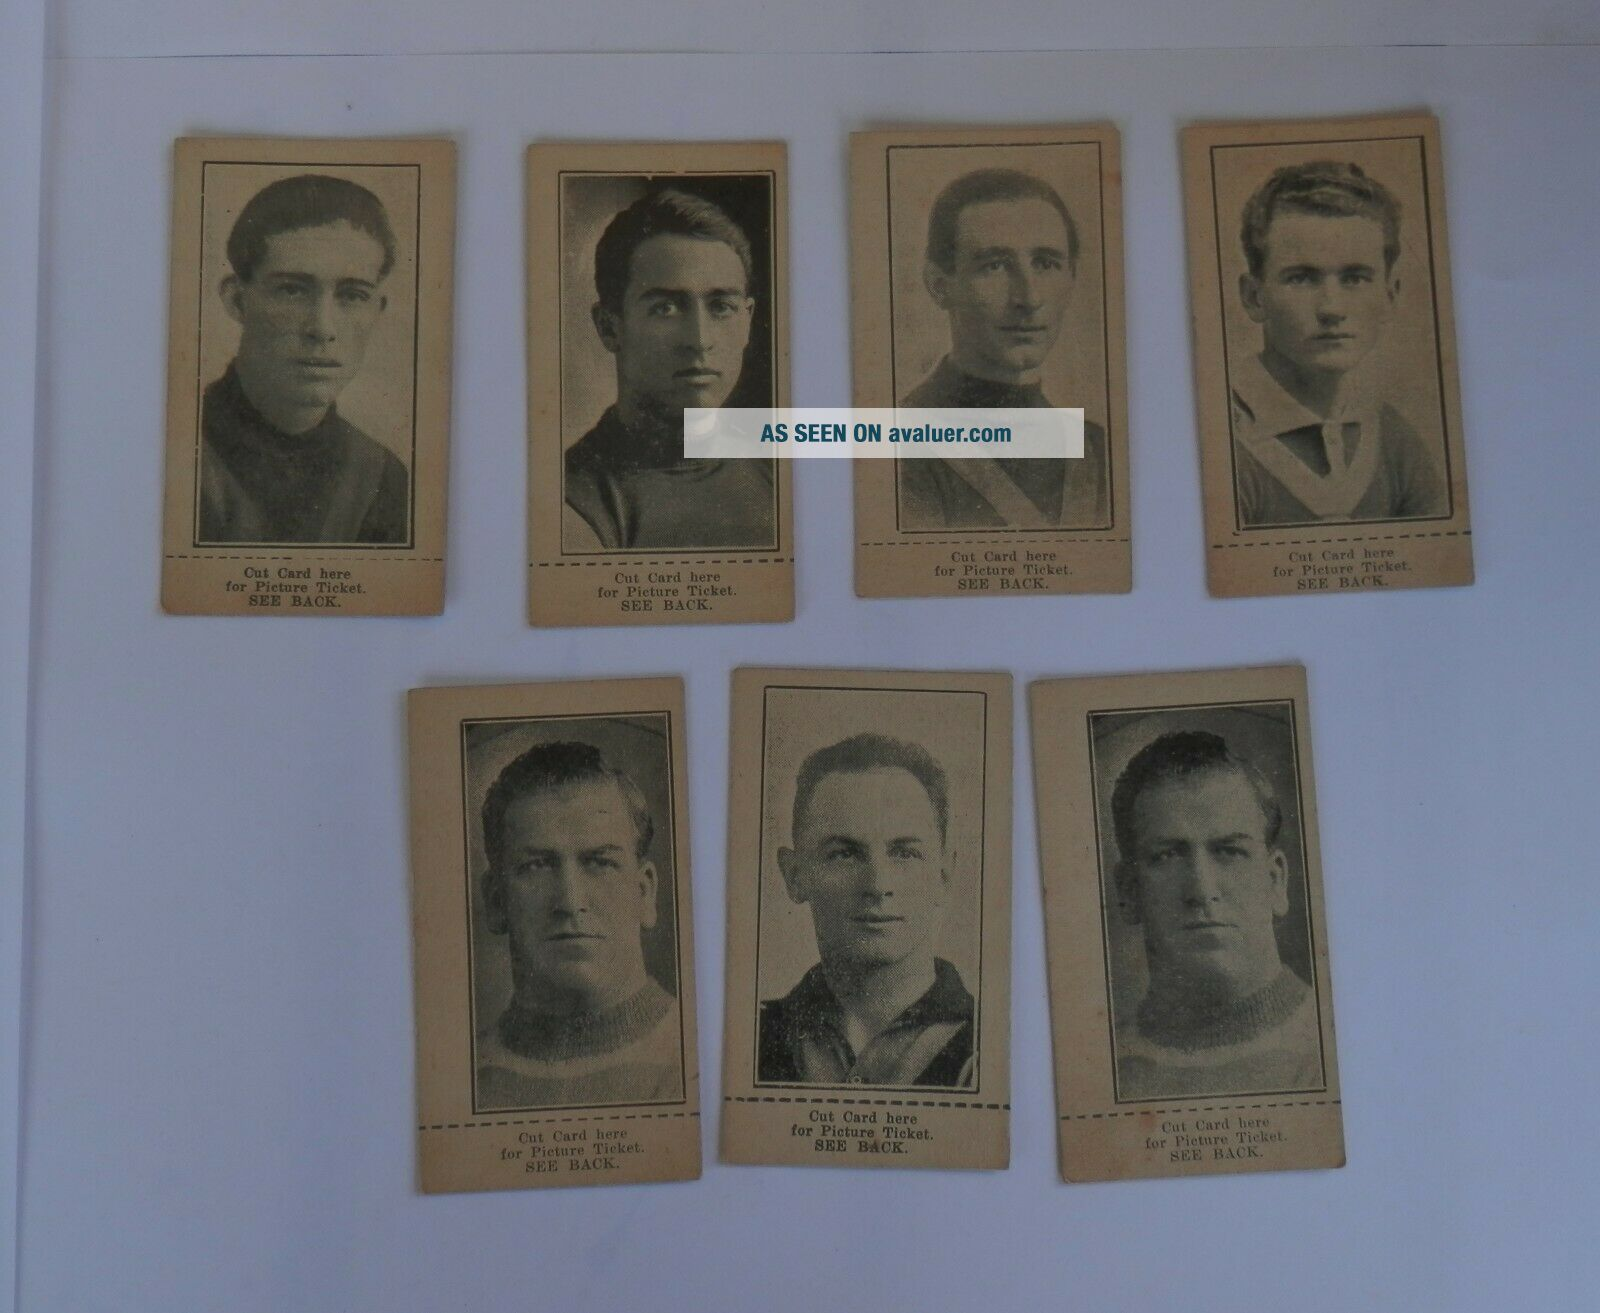 AFL VFL WAFL OLD RARE FOOTBALL CARDS 1920s 30s